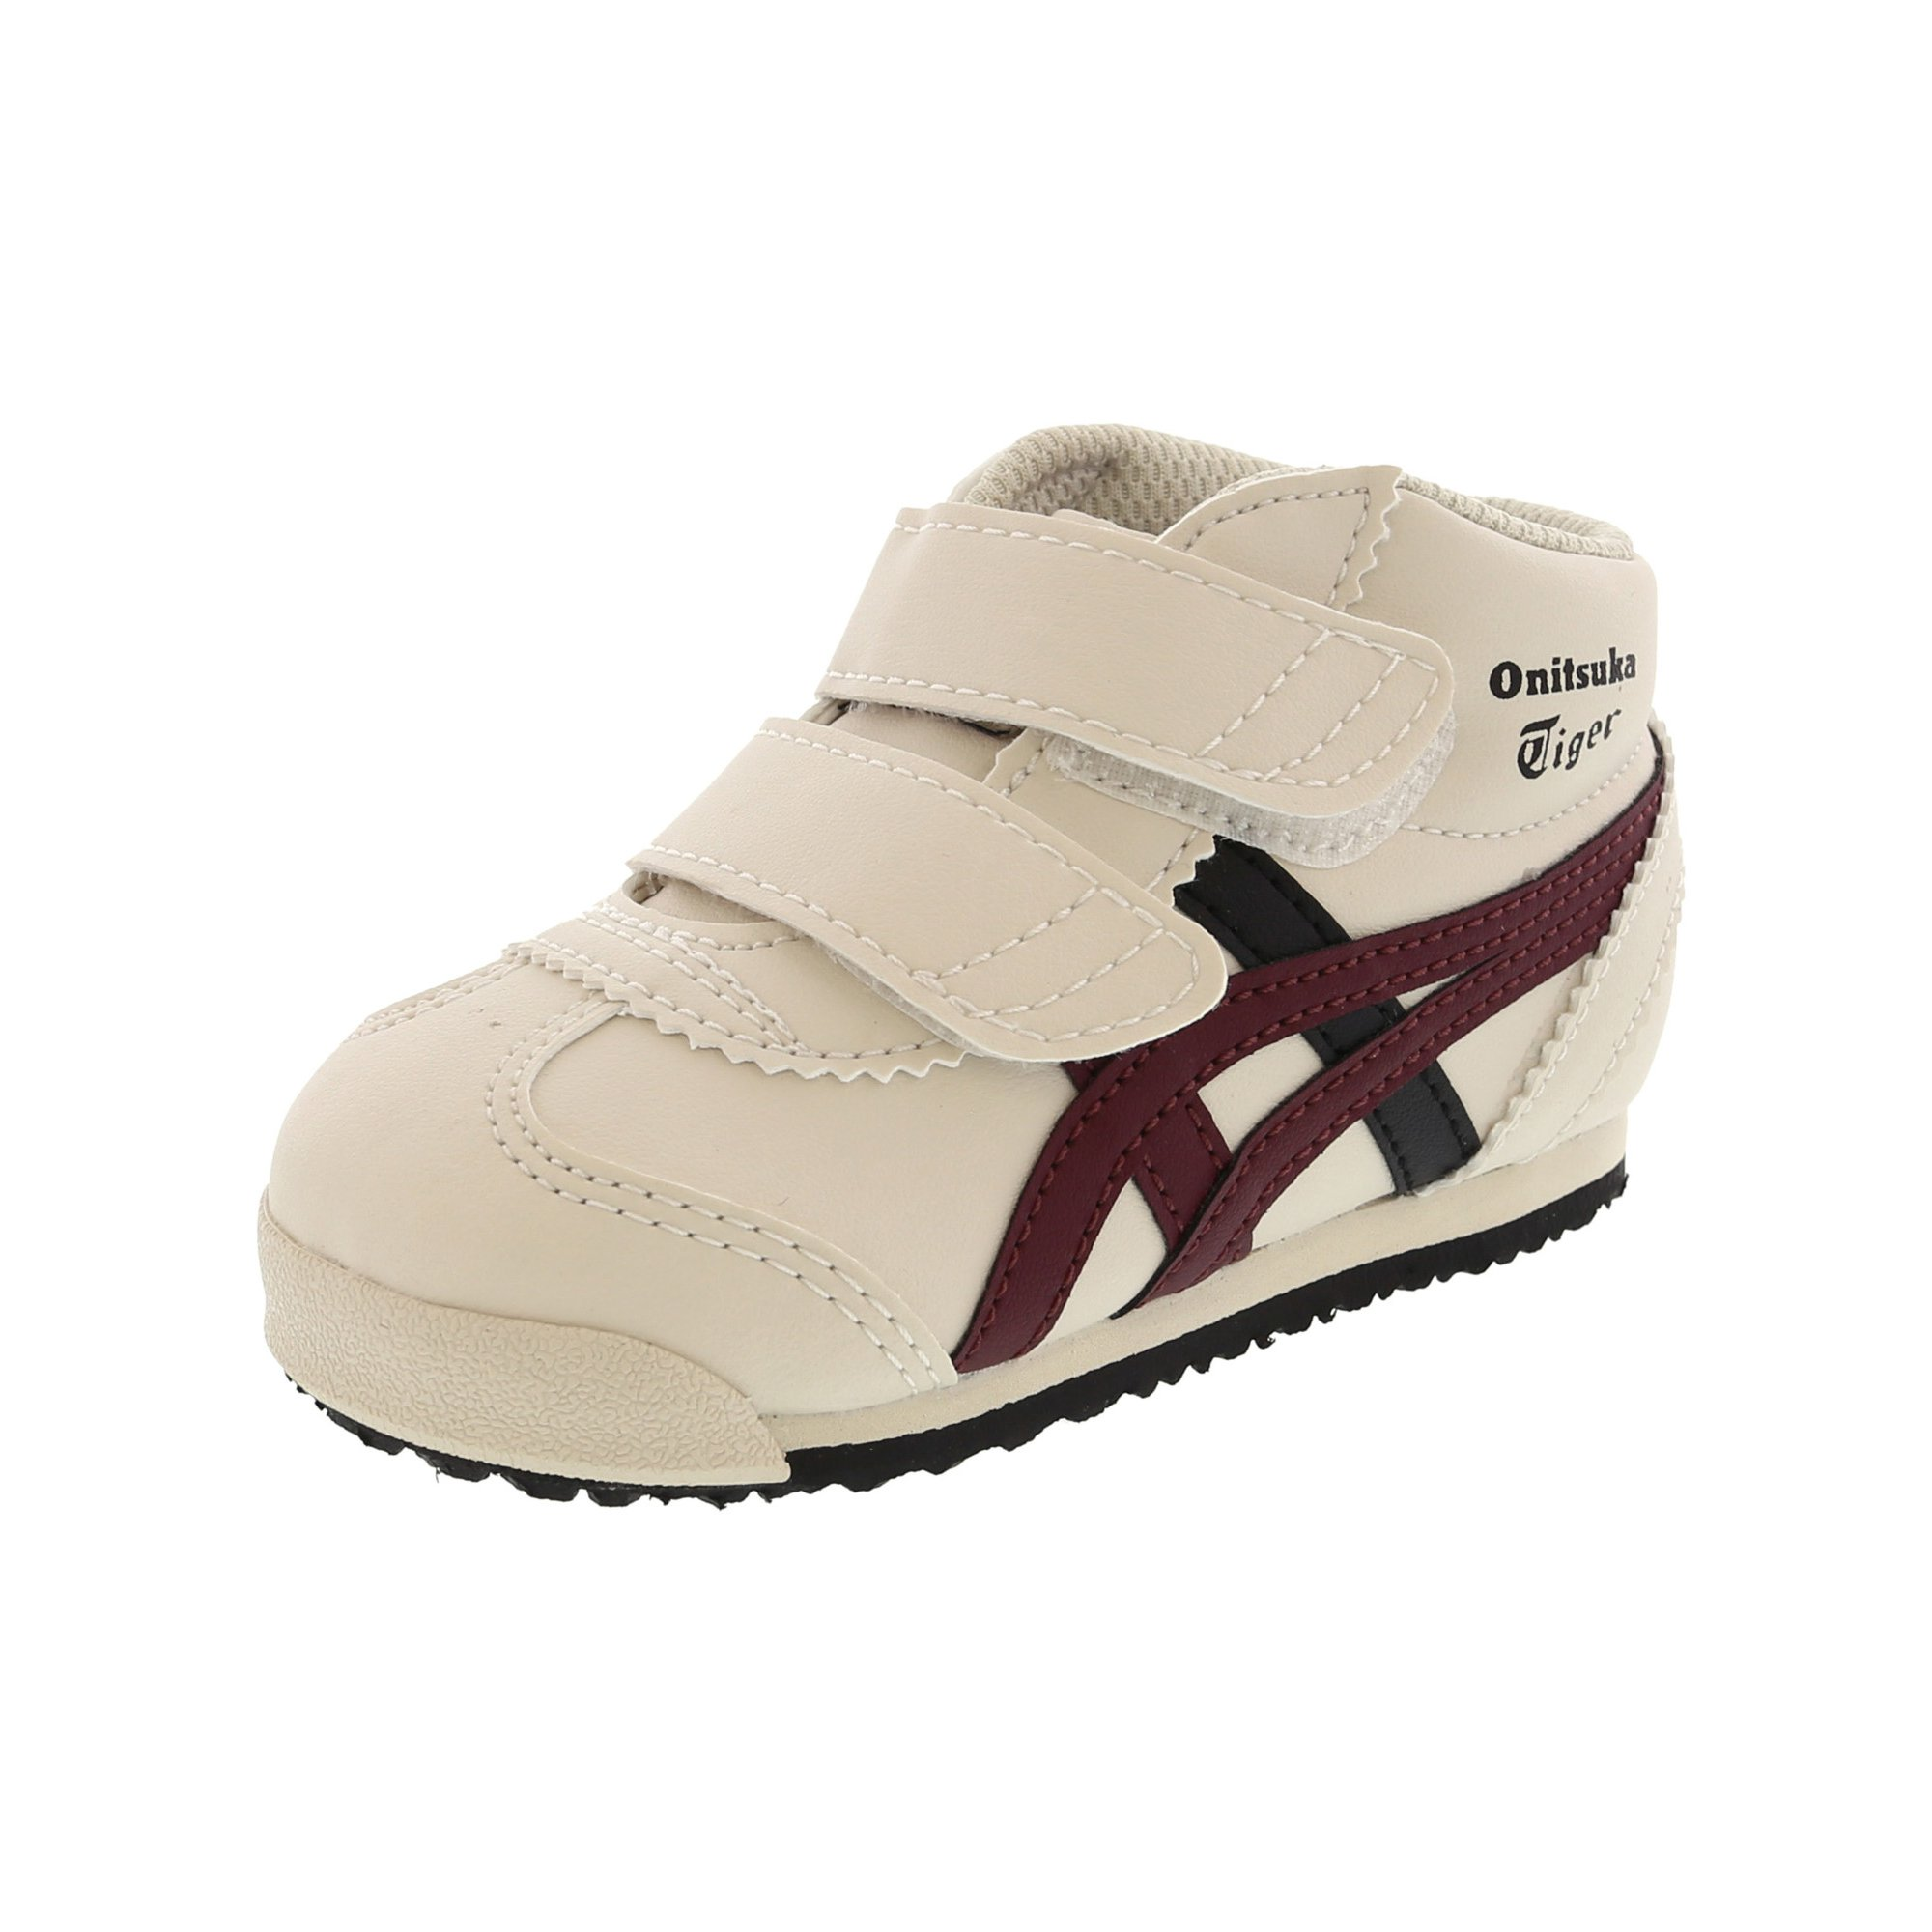 nouveau concept 07290 1af13 Onitsuka Tiger Mexico Mid Runner Ts Oatmeal/Port Royal Ankle ...